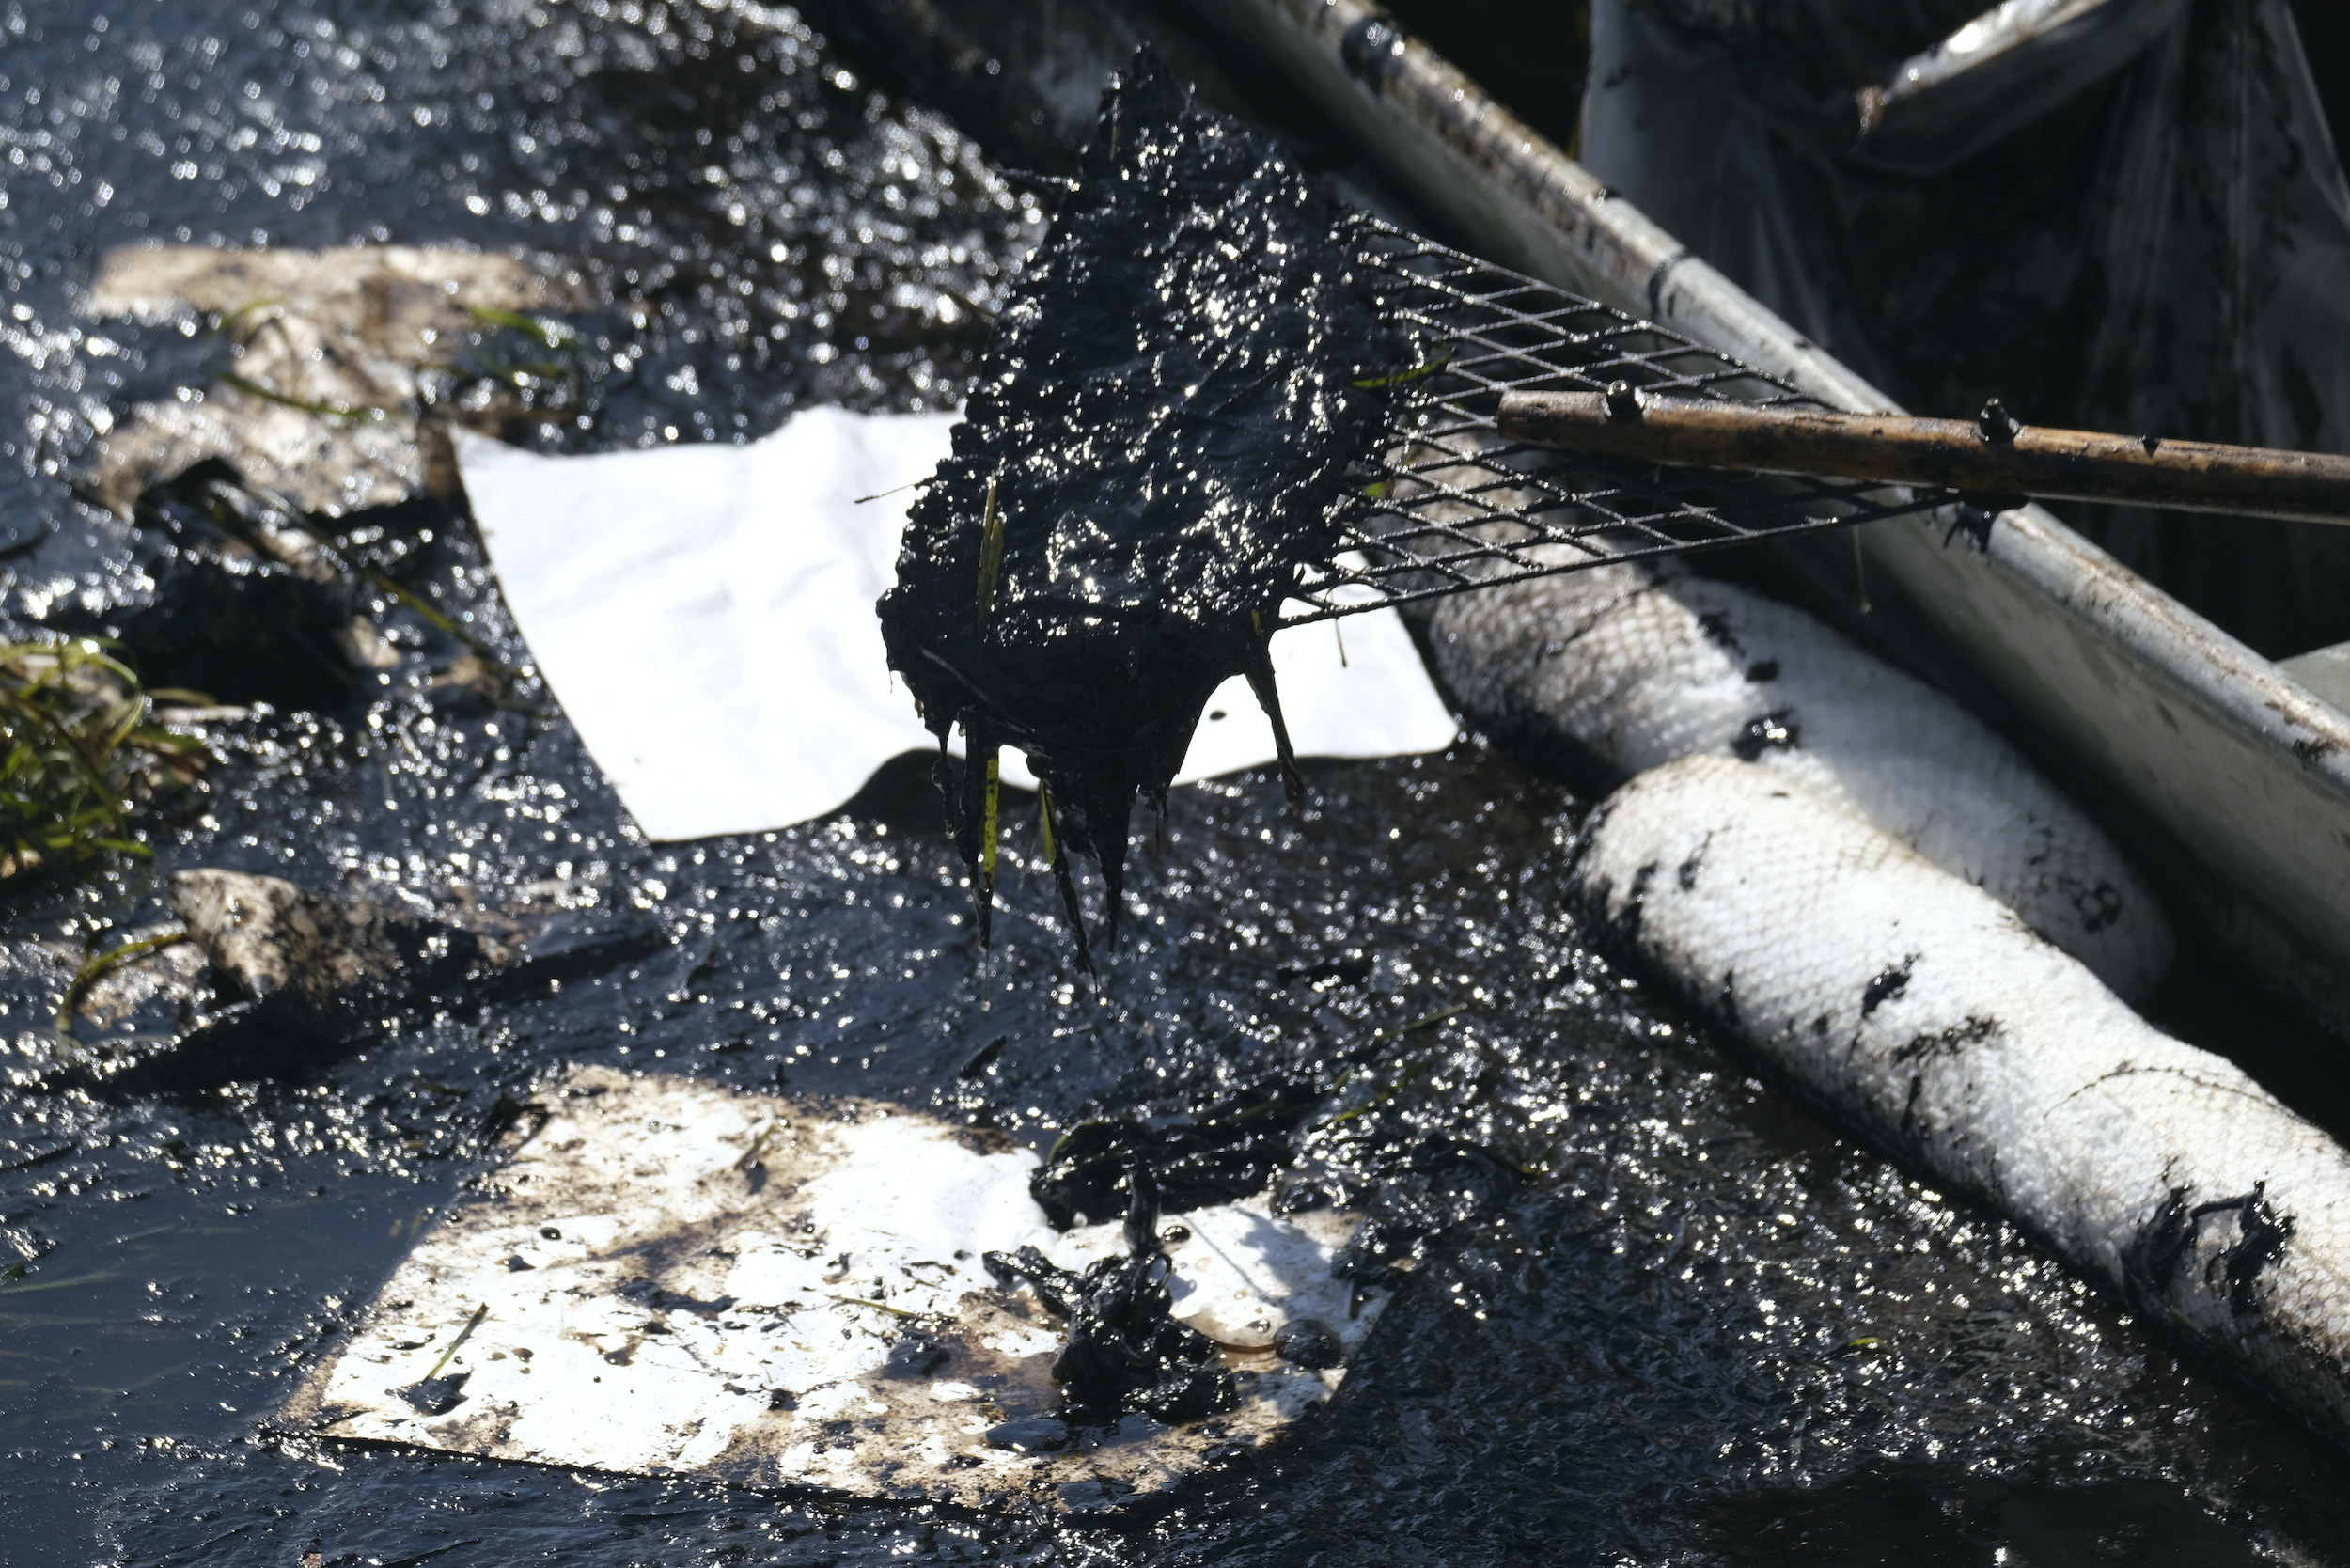 A tool for cleanup is covered in gooey remnants from the oil spill